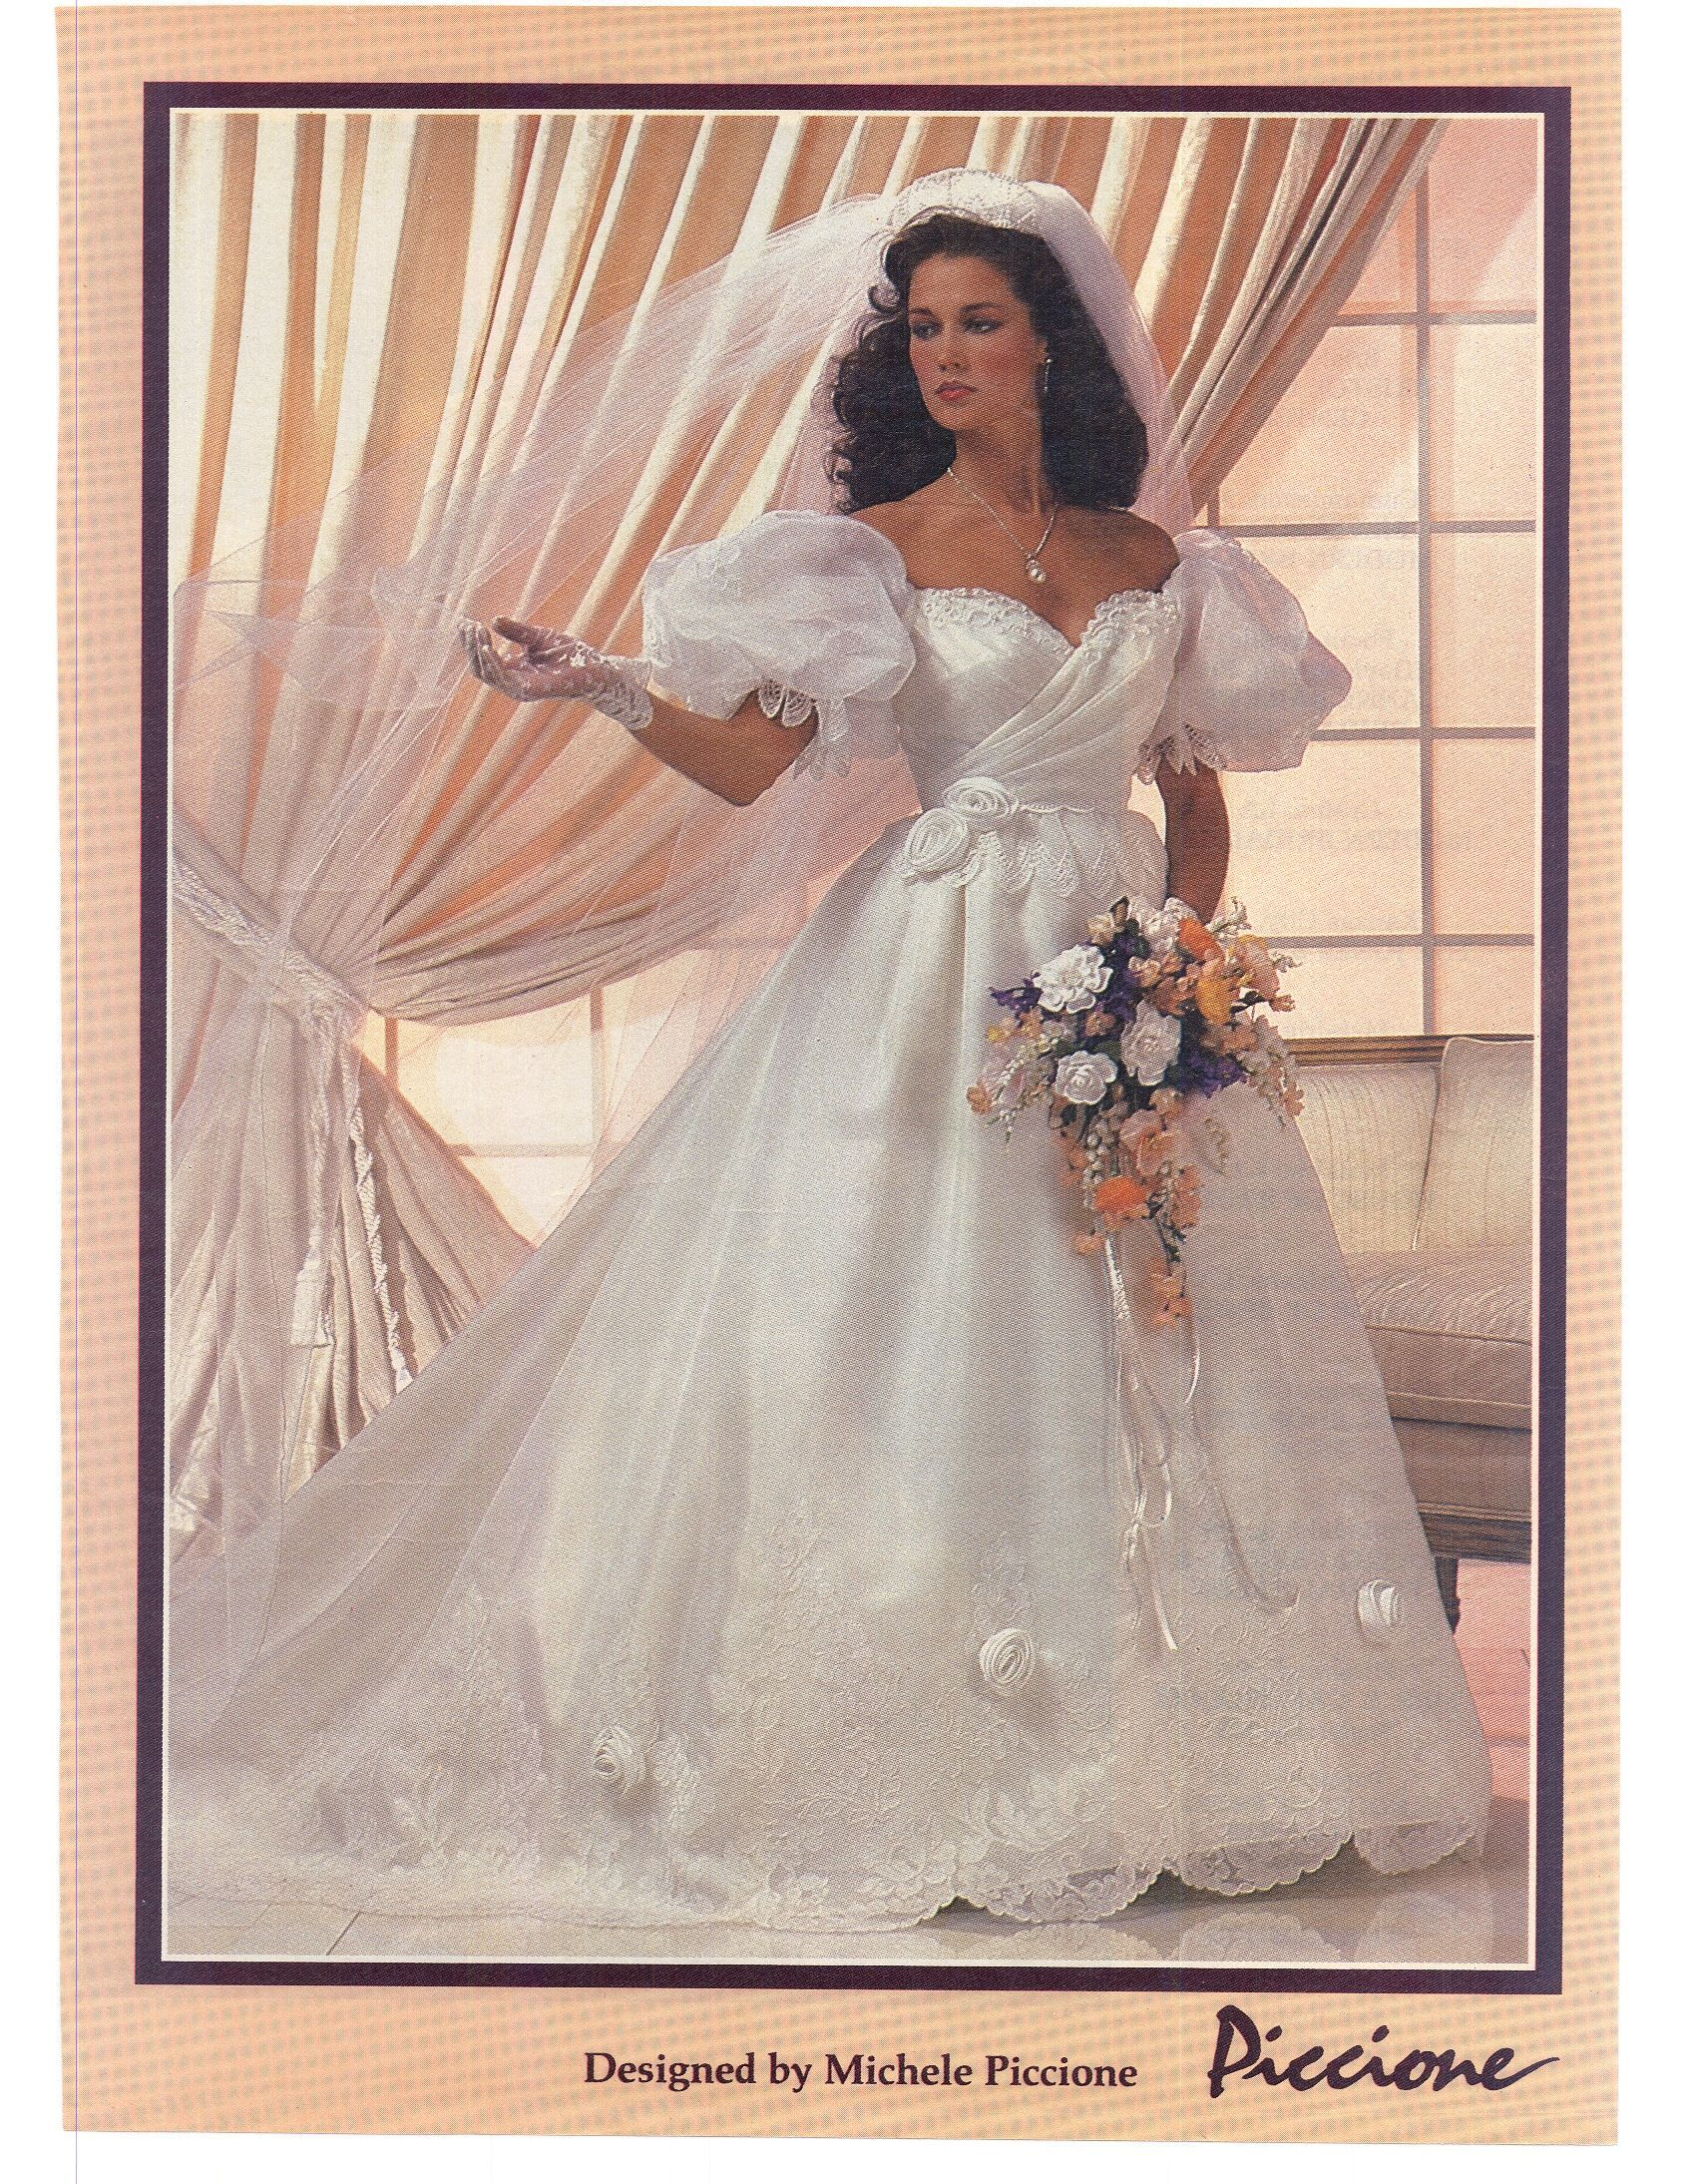 Modern Bride Feb/Mar 1984. I love this dress. It is so frilly, girly ...